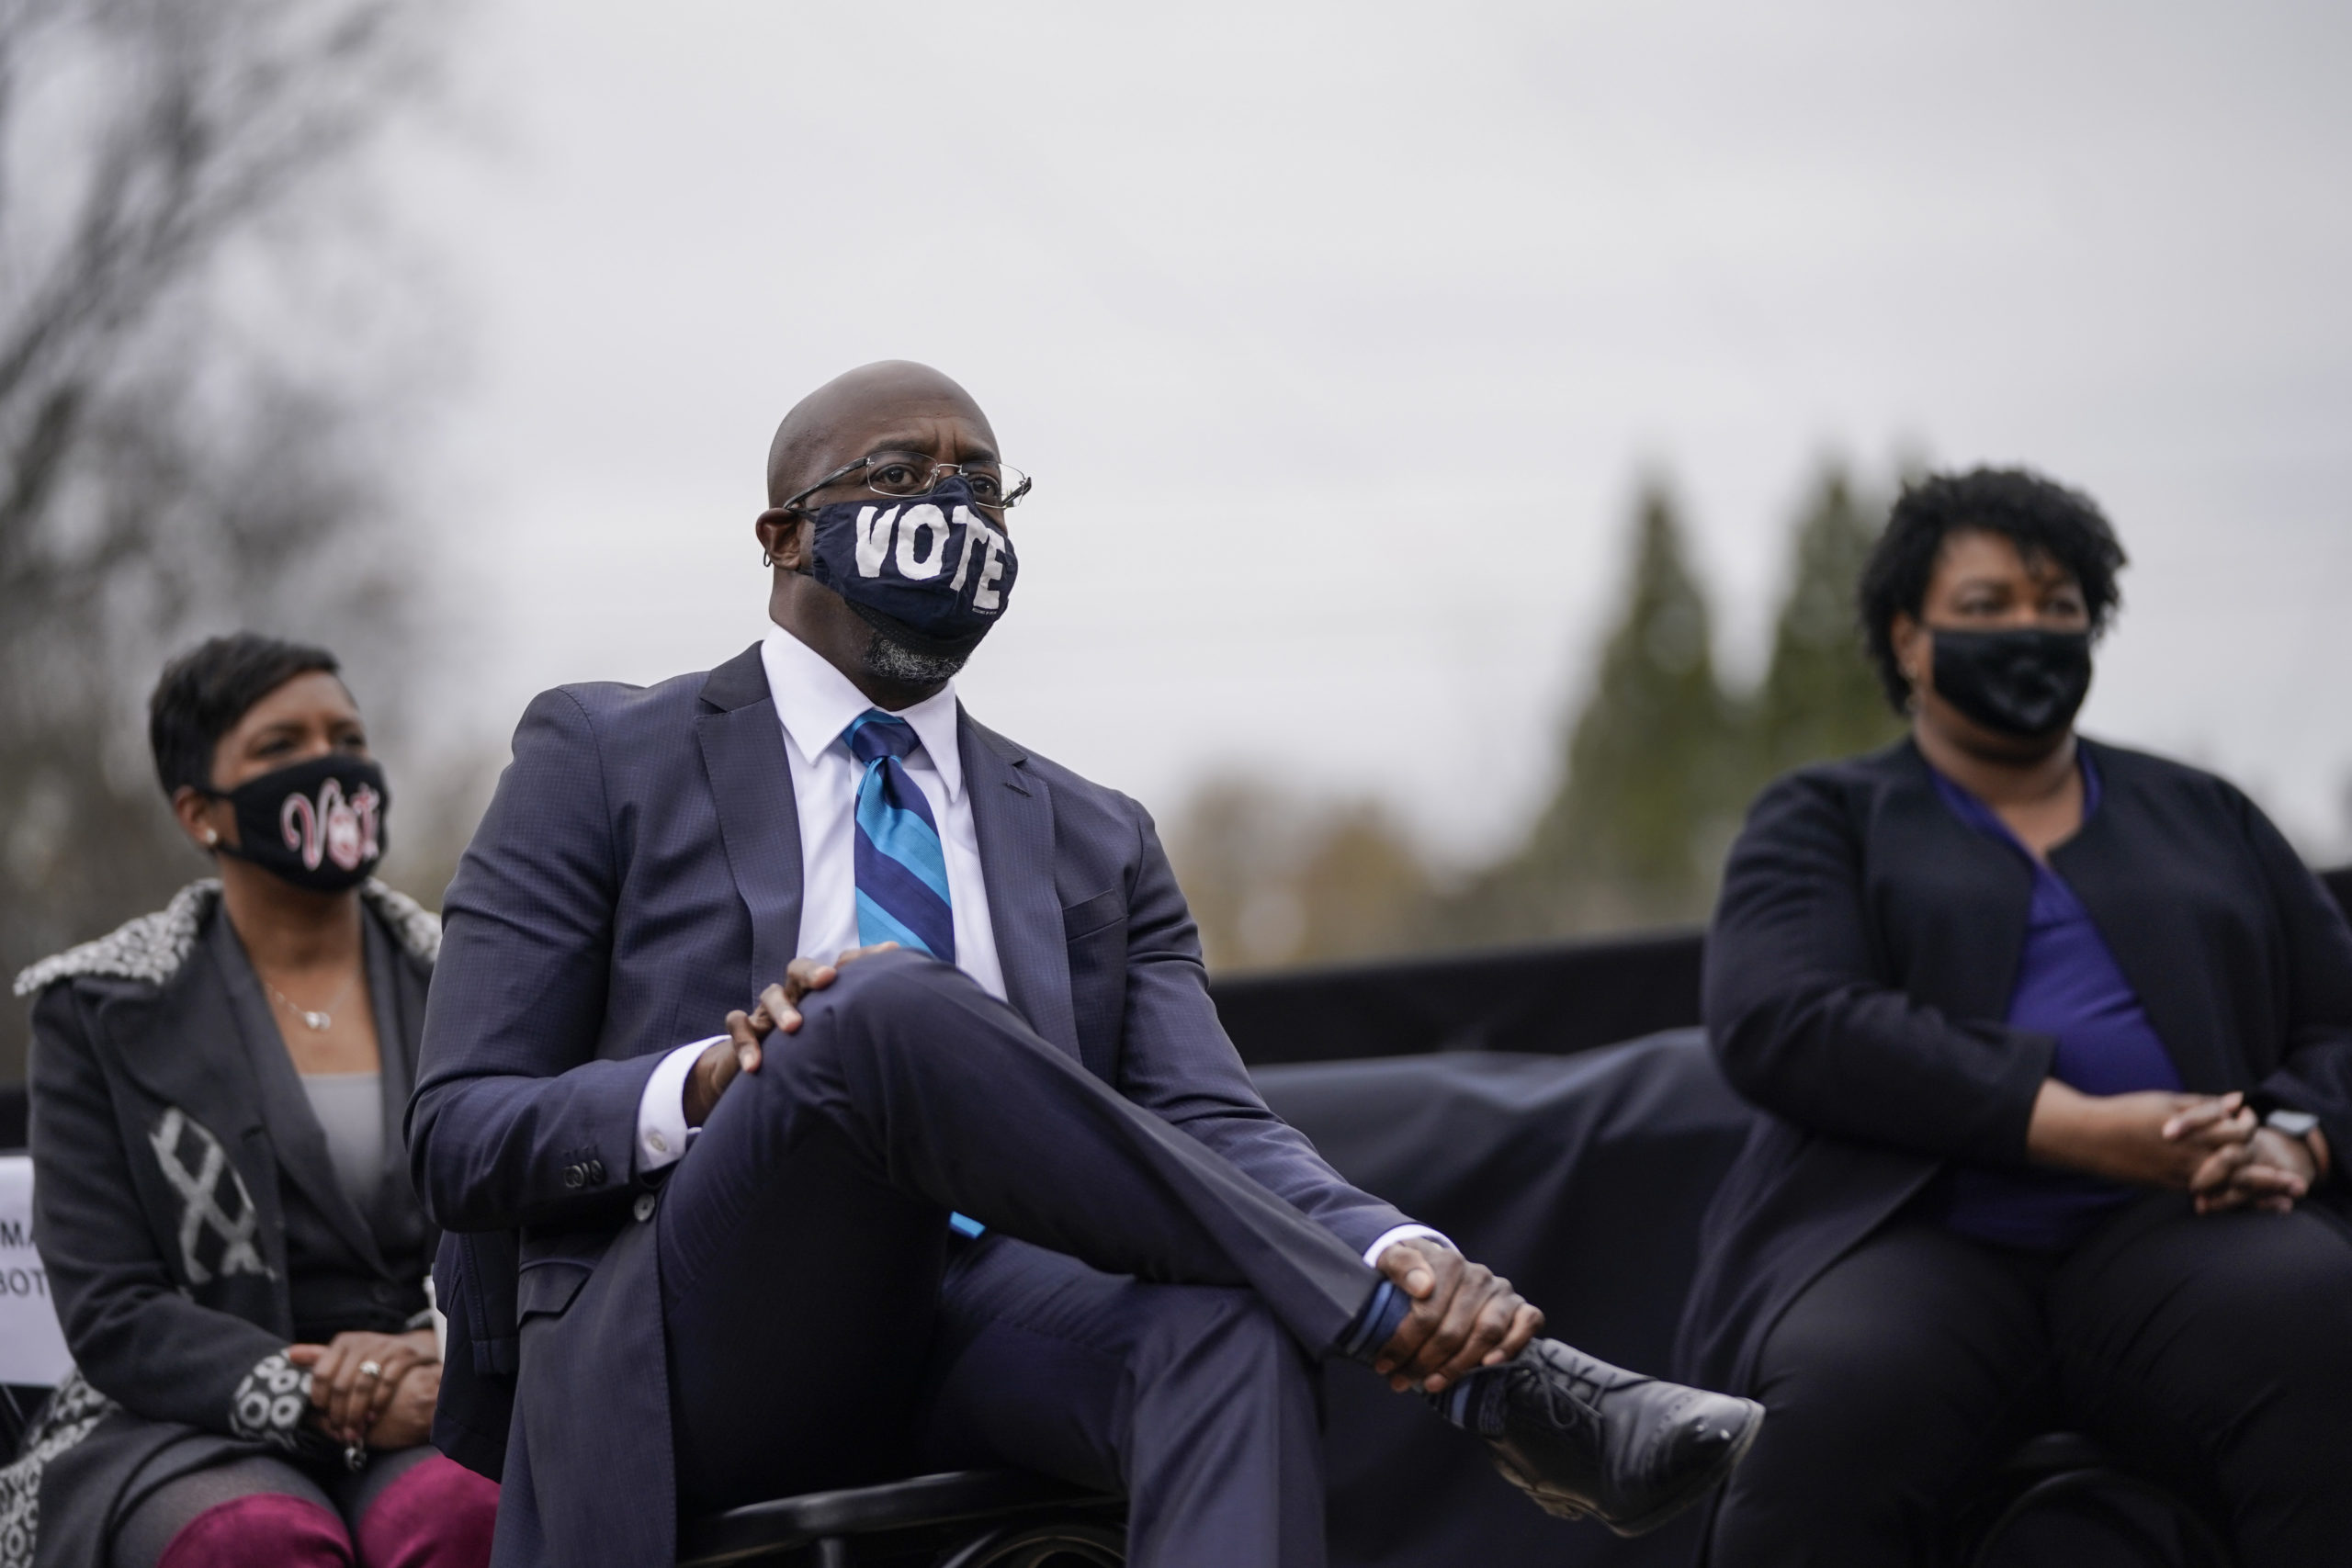 ATLANTA, GA - DECEMBER 15: (L-R) Atlanta Mayor Keisha Lance Bottoms, U.S. Democratic Senate candidate Raphael Warnock and Stacey Abrams listen as U.S. President-elect Joe Biden speaks during a campaign rally at Pullman Yard on December 15, 2020 in Atlanta, Georgia. Biden's stop in Georgia comes less than a month before the January 5 runoff election for Ossoff and Warnock as they try to unseat Republican incumbents Sen. David Perdue and Sen. Kelly Loeffler. (Photo by Drew Angerer/Getty Images)